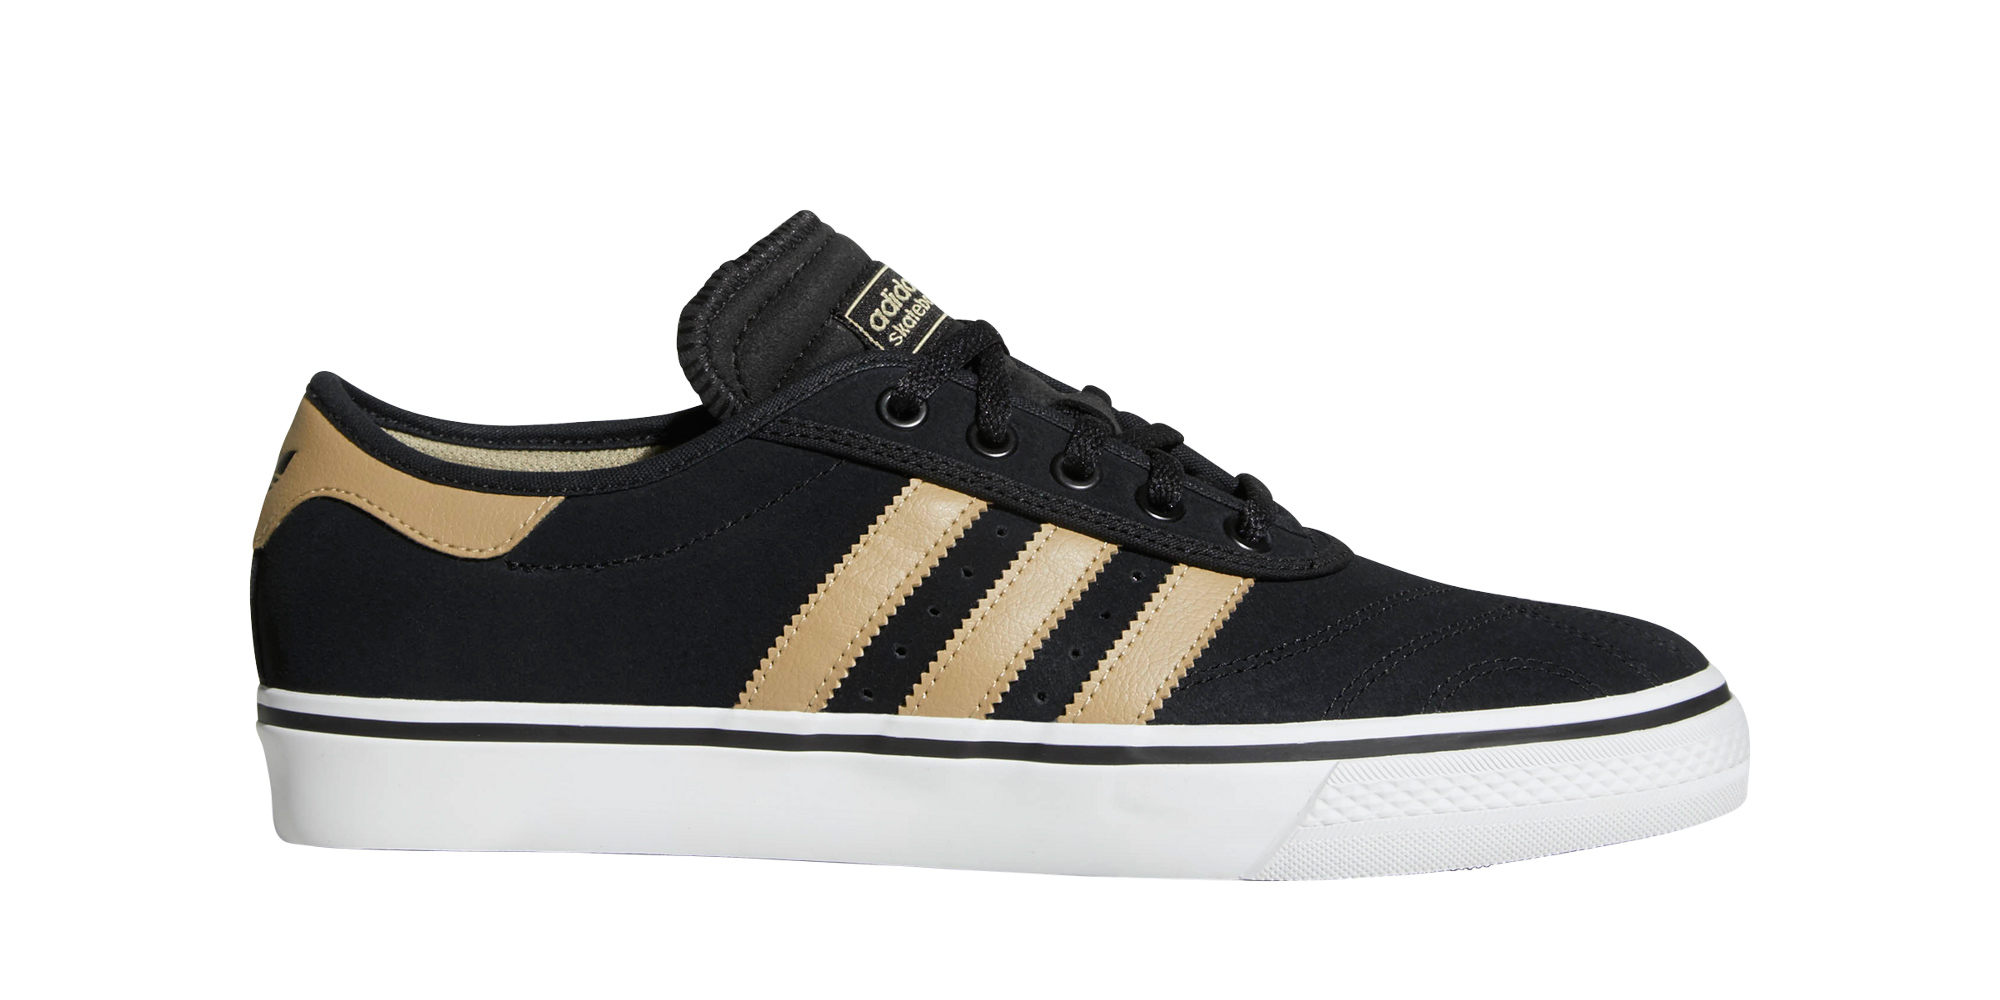 info for 7a6d0 9360b Adidas Adi-Ease Premiere Skate Shoes   Mens  The Board Basem